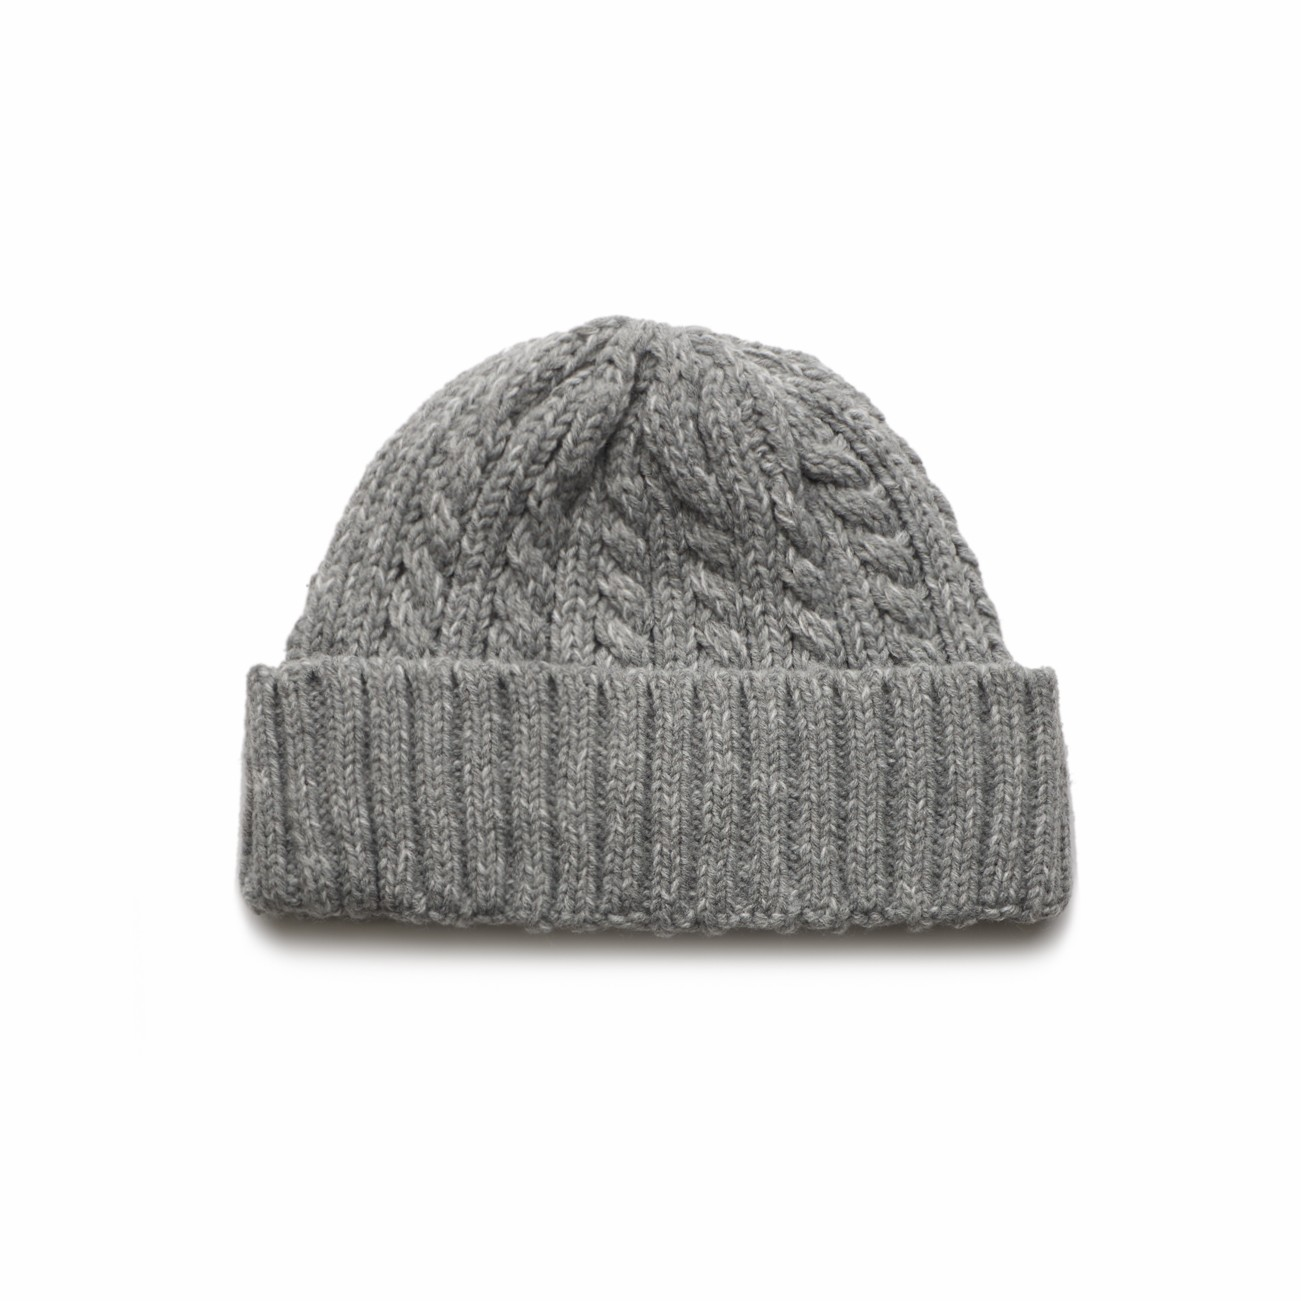 7f172488738708 AS MARLE BEANIE - GREY MARLE - Nublank Caps